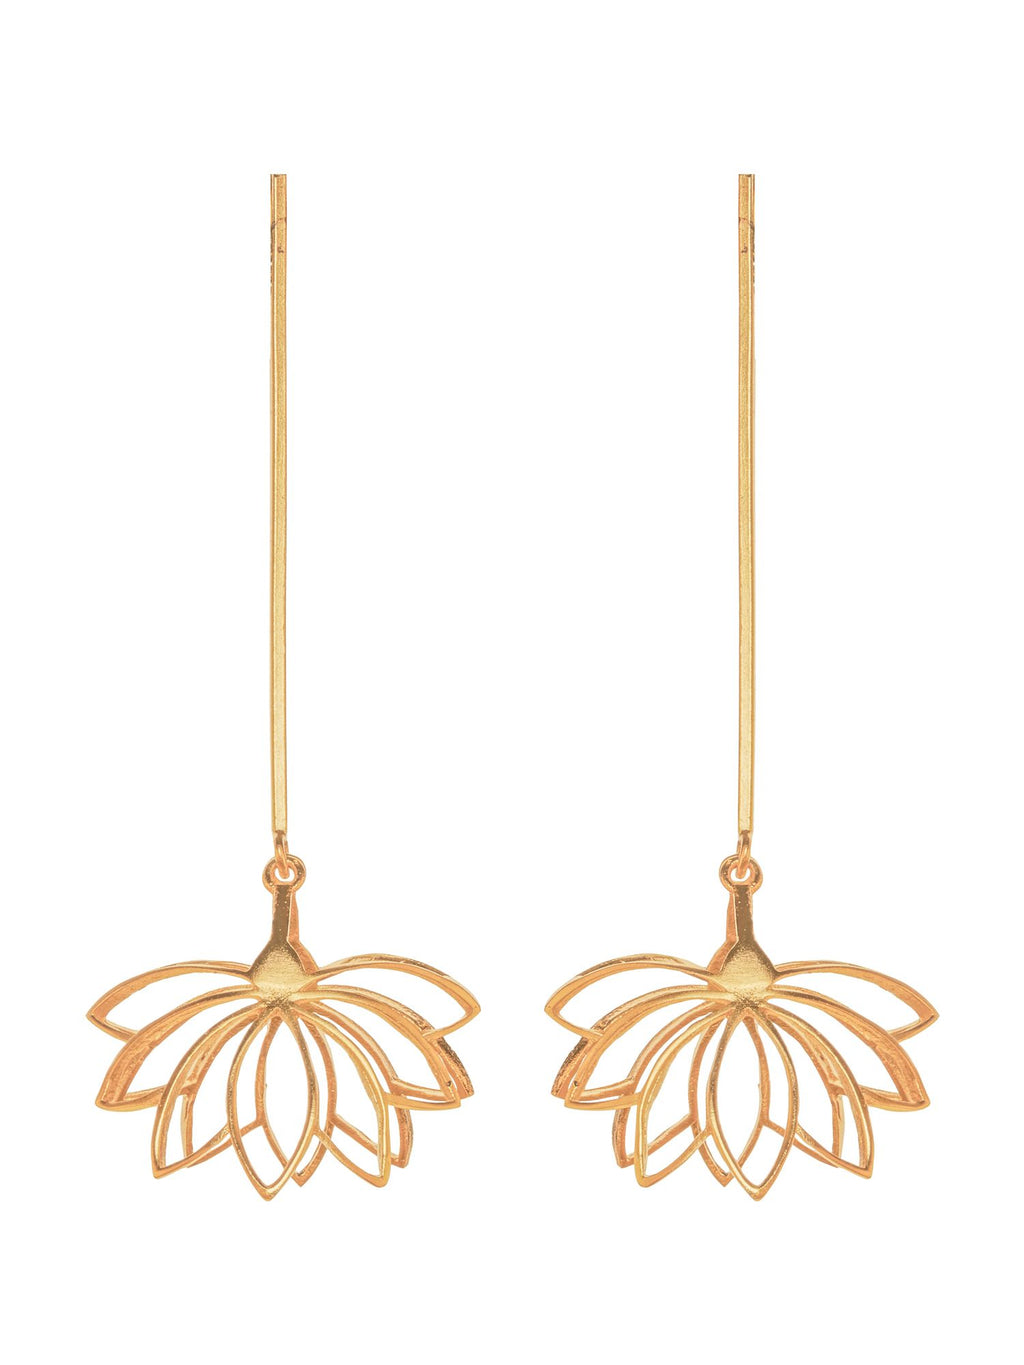 Inverted Lotus Gold Plated Earrings - Riviera Closet